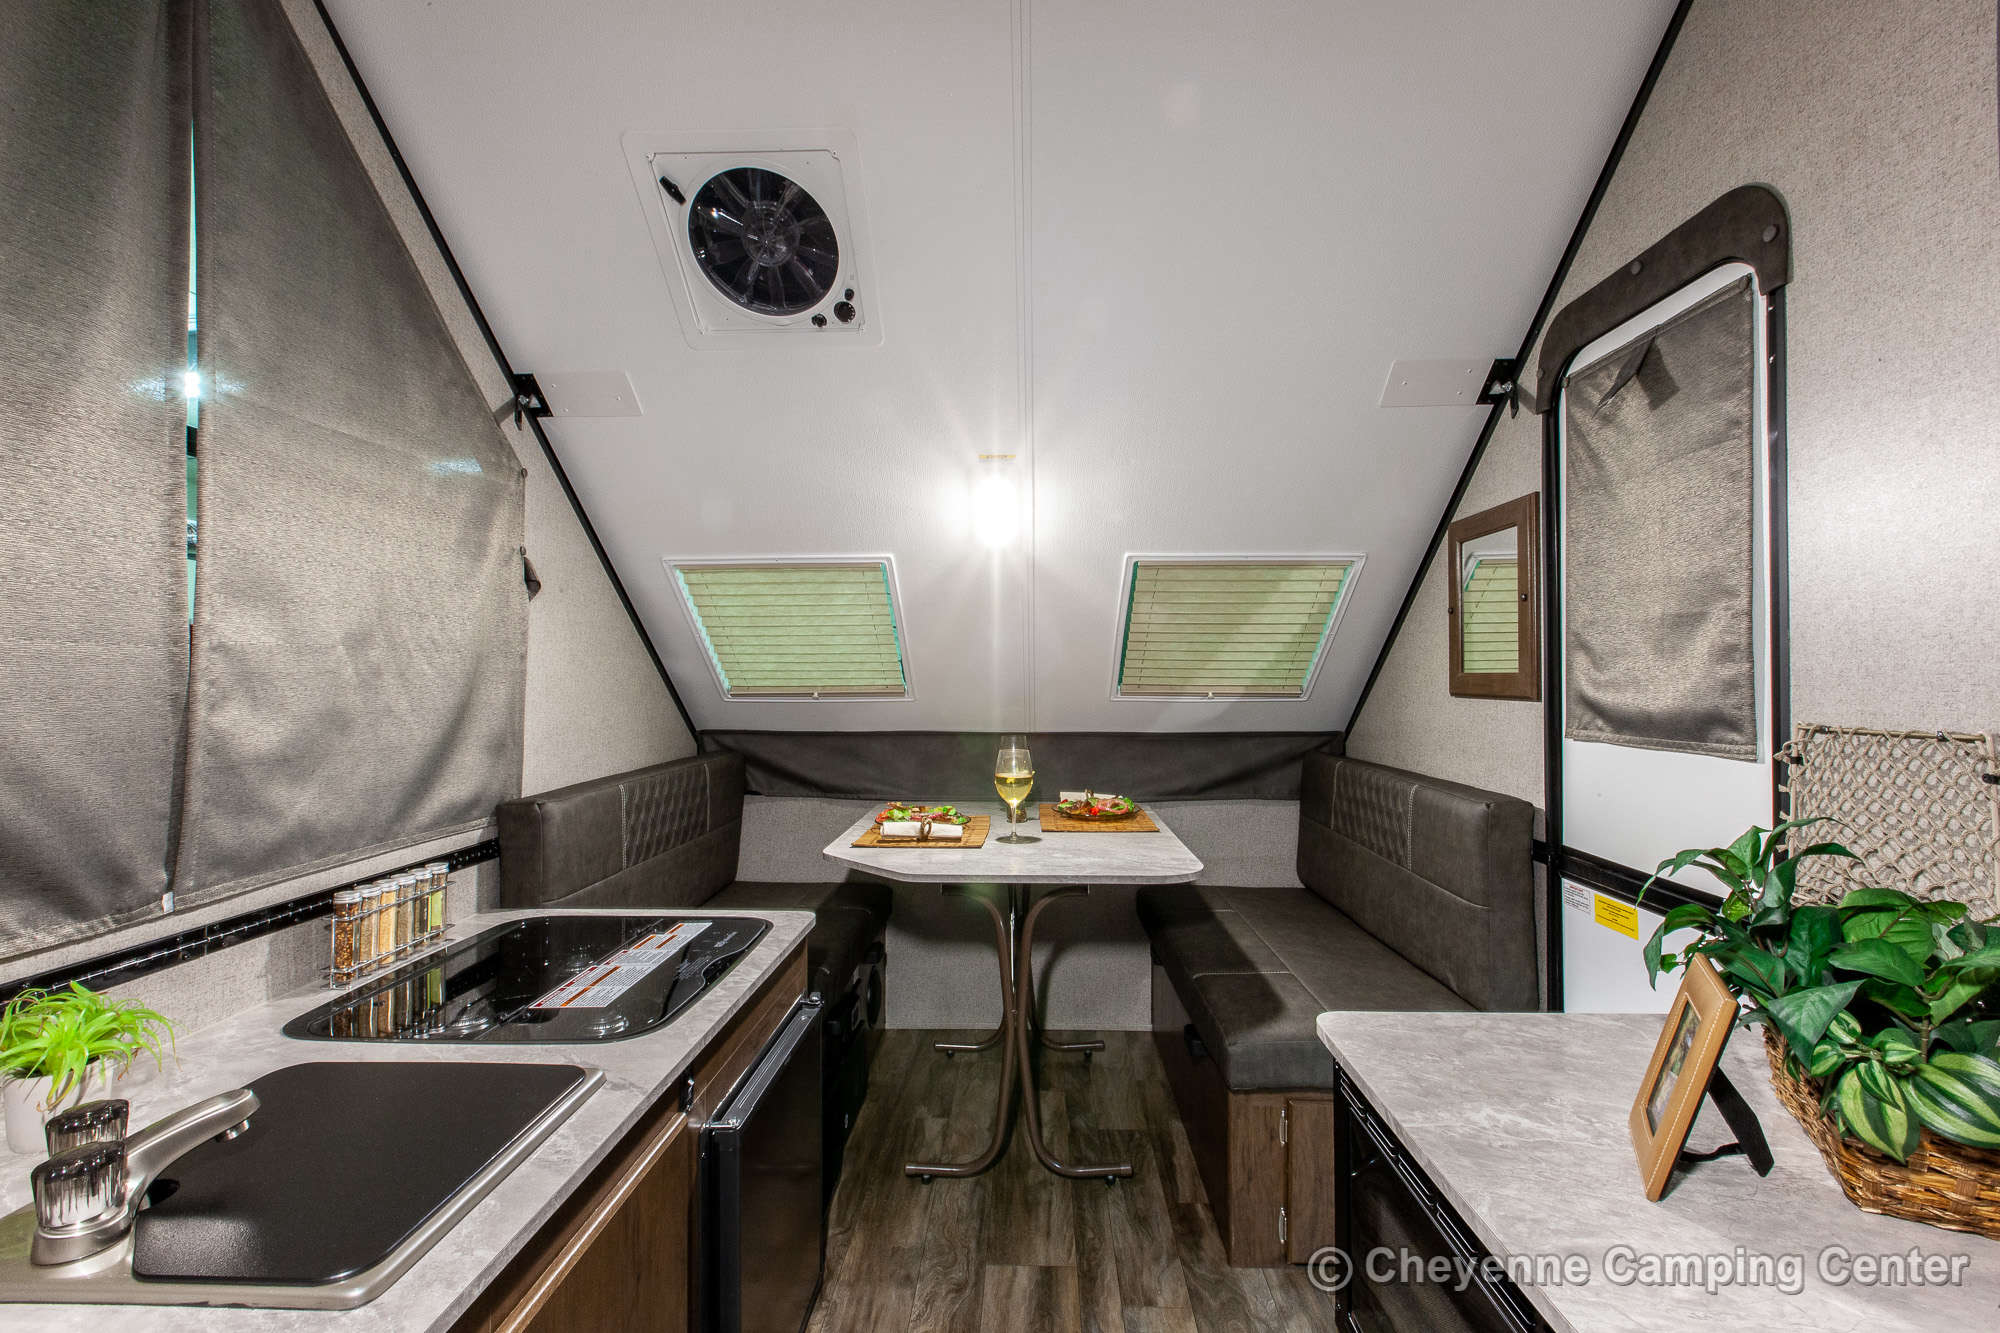 2021 Forest River Flagstaff Hard Side T12RBST Folding Camper Interior Image